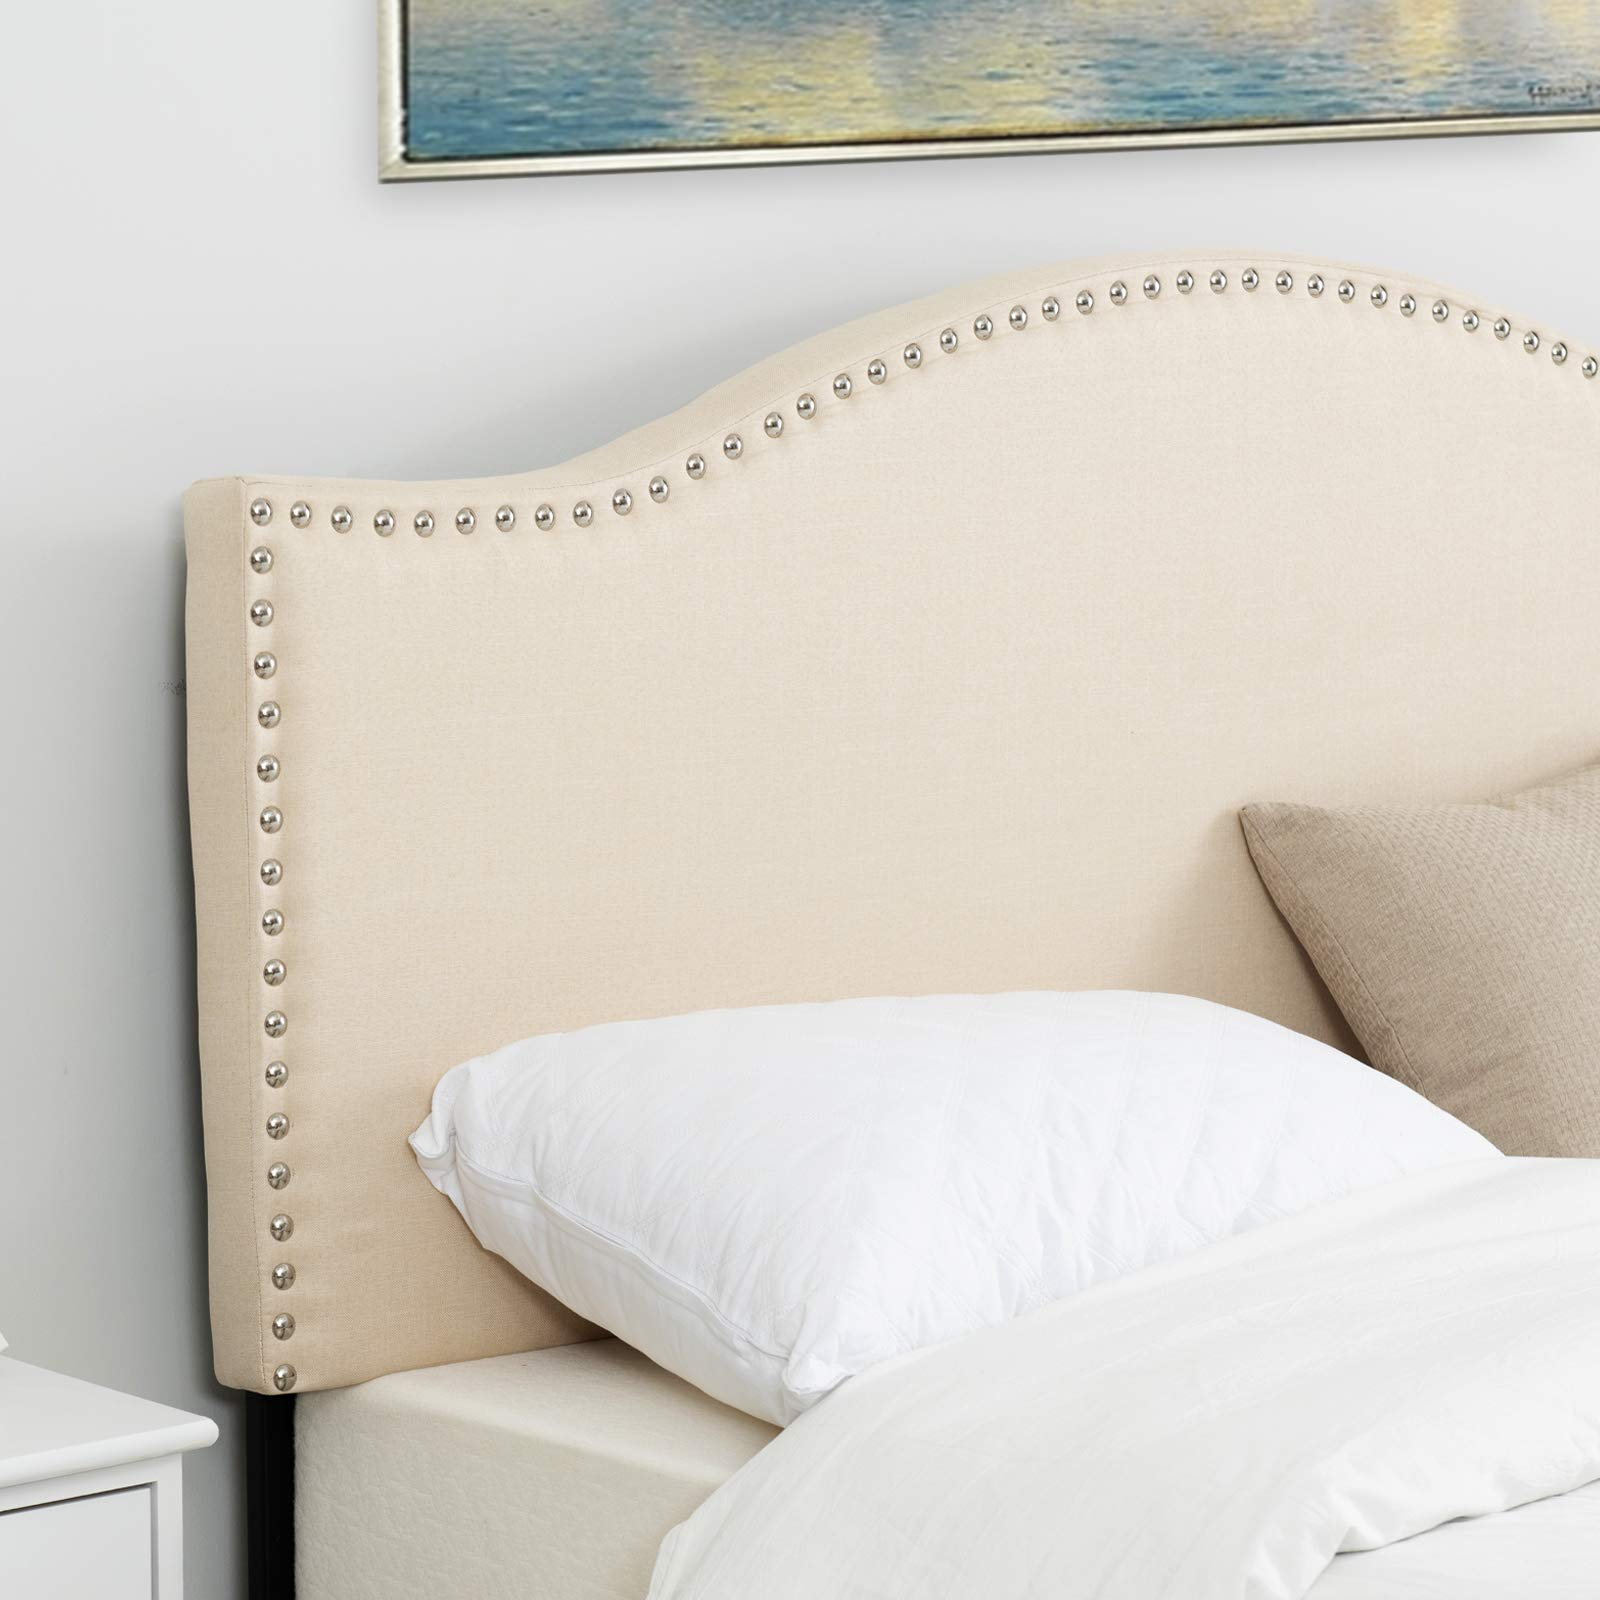 LAGRIMA Upholstered Linen Twin Size Headboard with Decorative Nailhead Trim and Curved Shape in Beige Fabric Adjustable Height